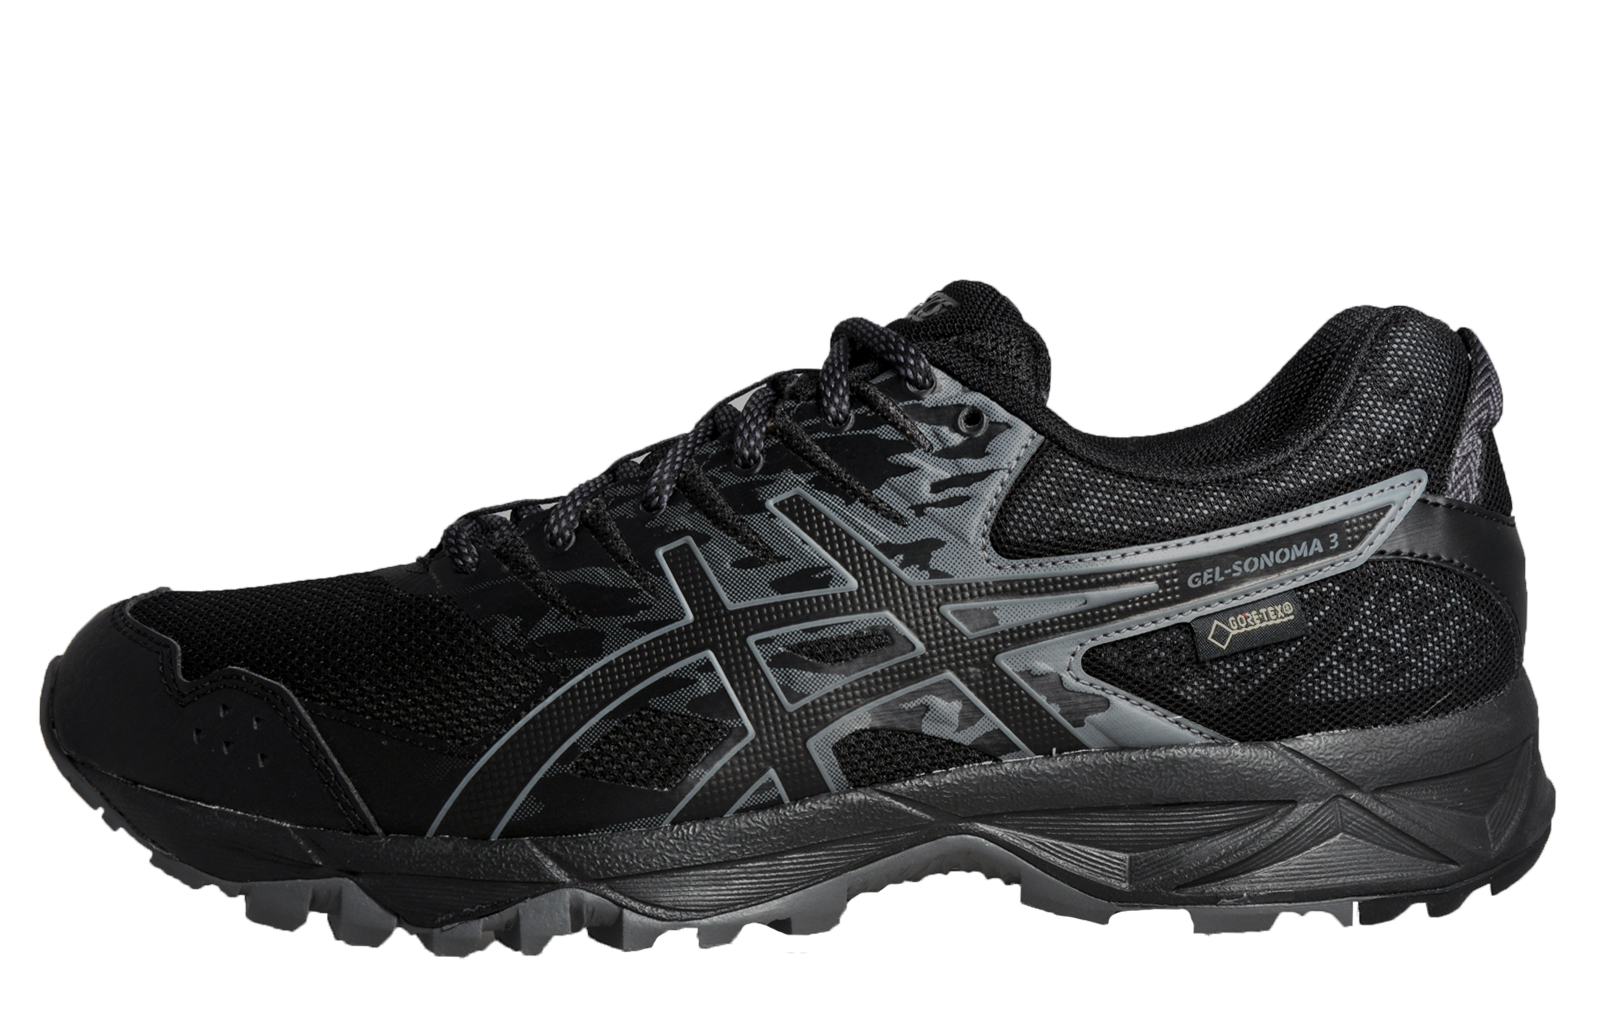 Asics Gel Sonoma 3 Gtx Gore Tex Mens All Terrain Outdoor